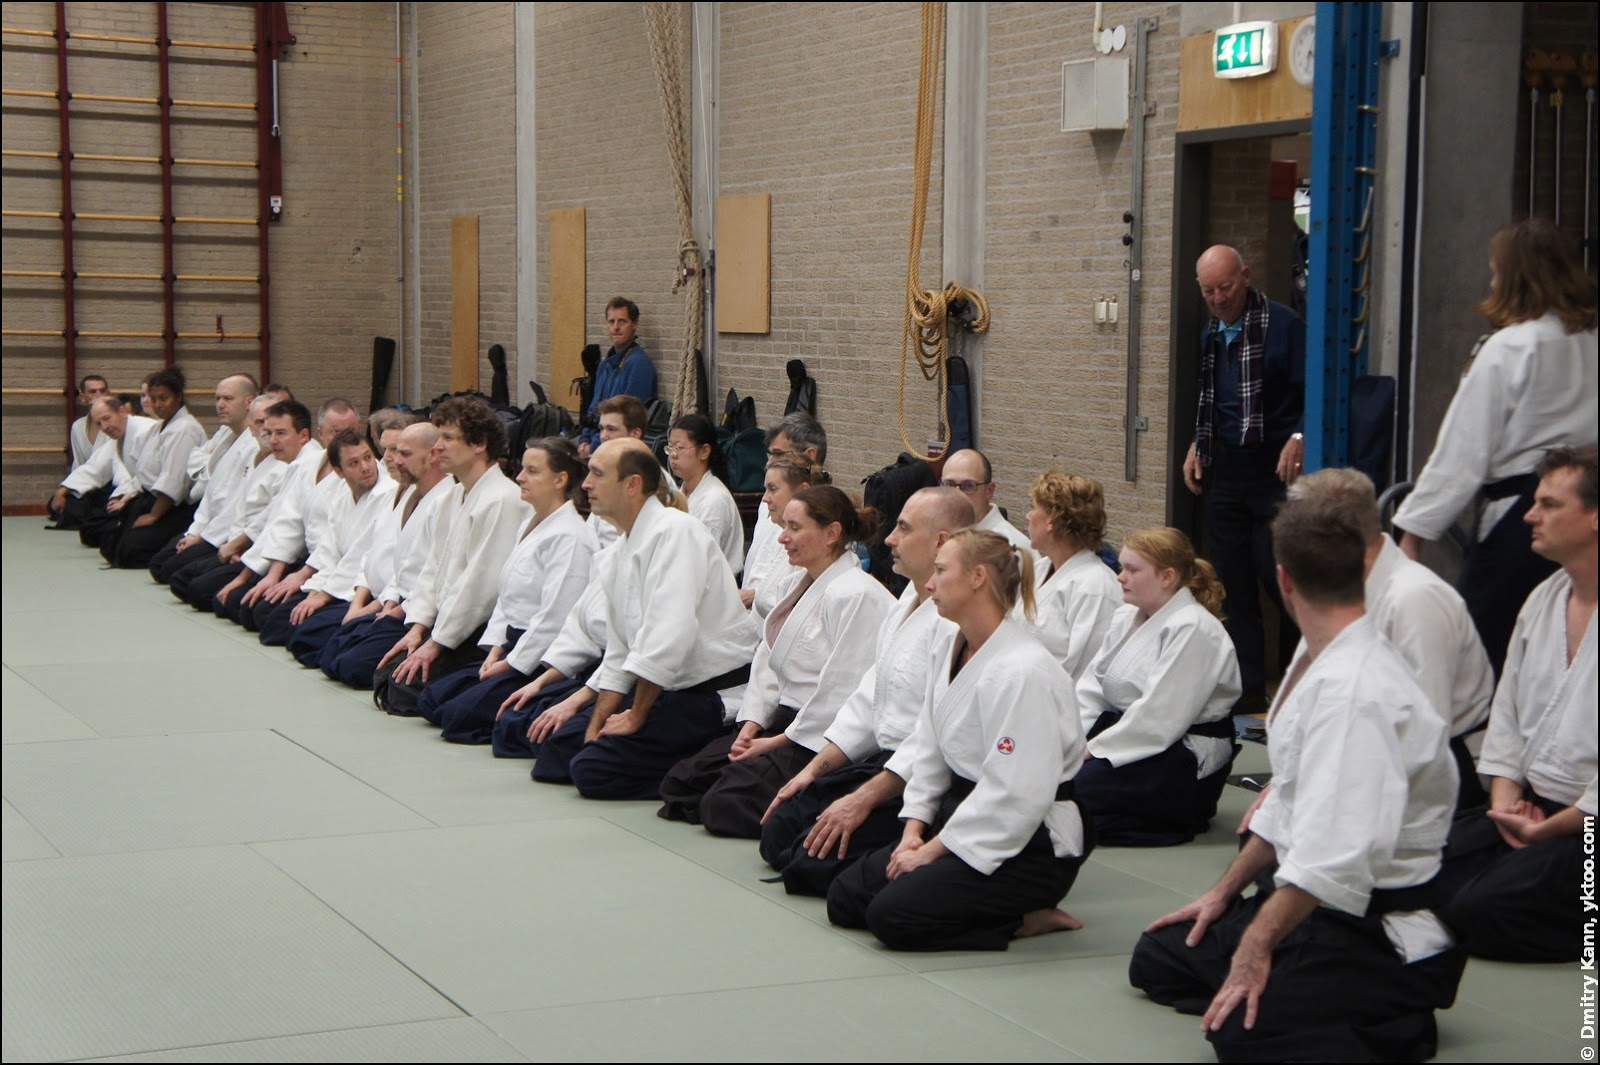 The seminar at Aikido Centrum Leiden.